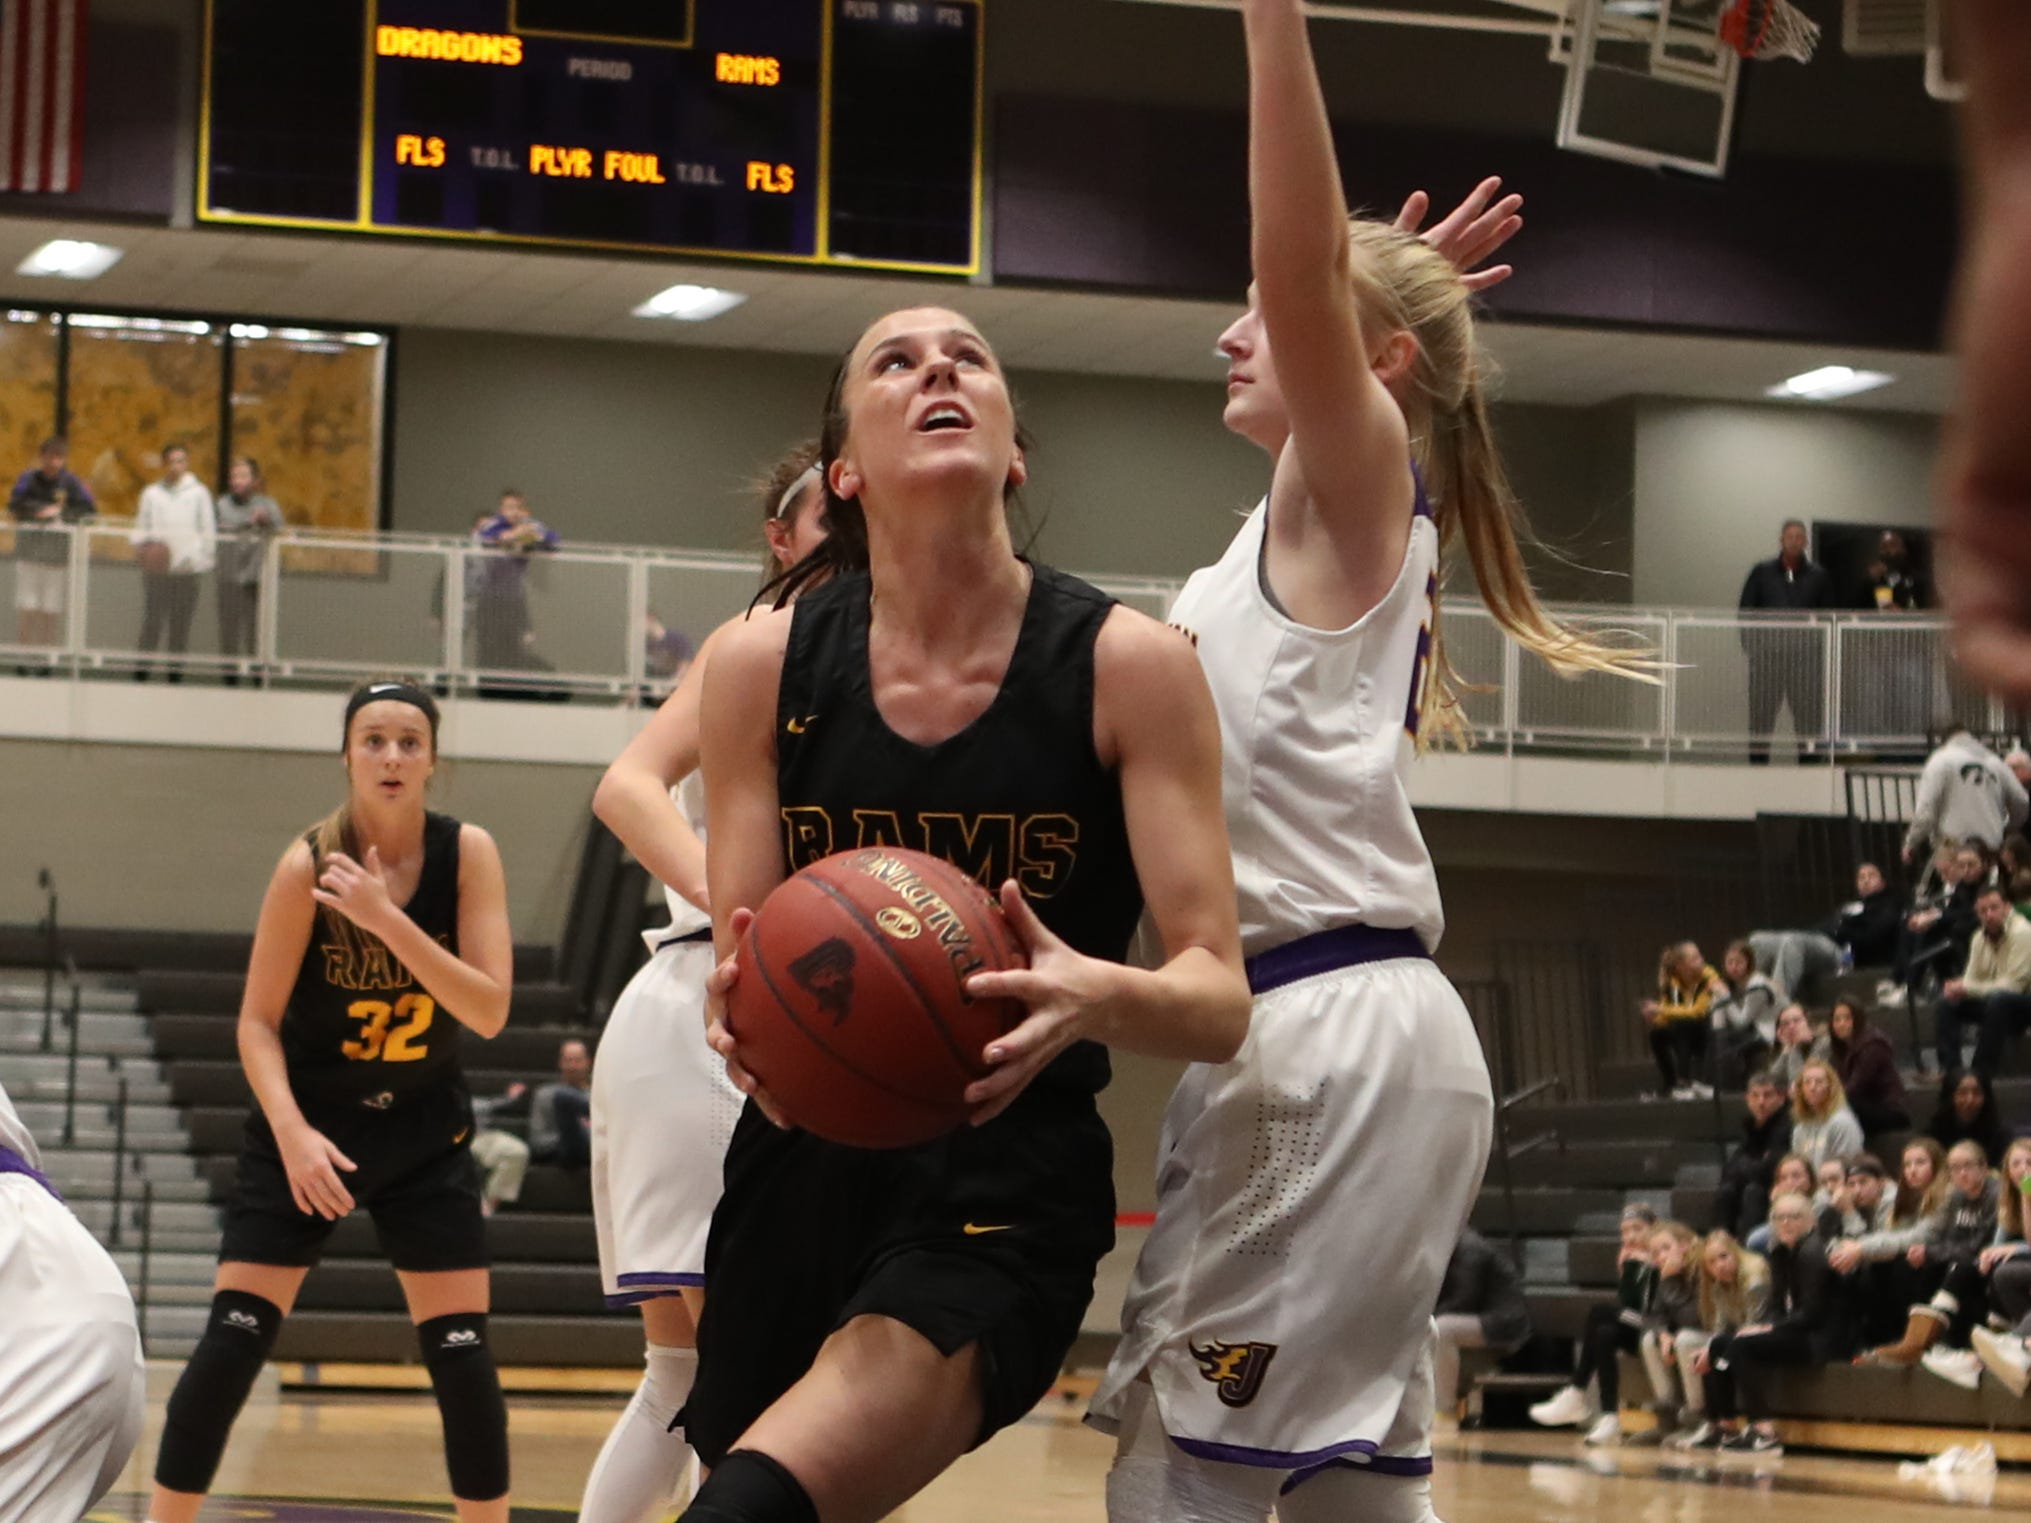 Southeast Polk's Liza Sutten (2) drives to the basket Feb. 5 in a game against No. 1 Johnston at Johnston High School. The Dragons won the game 89-67.